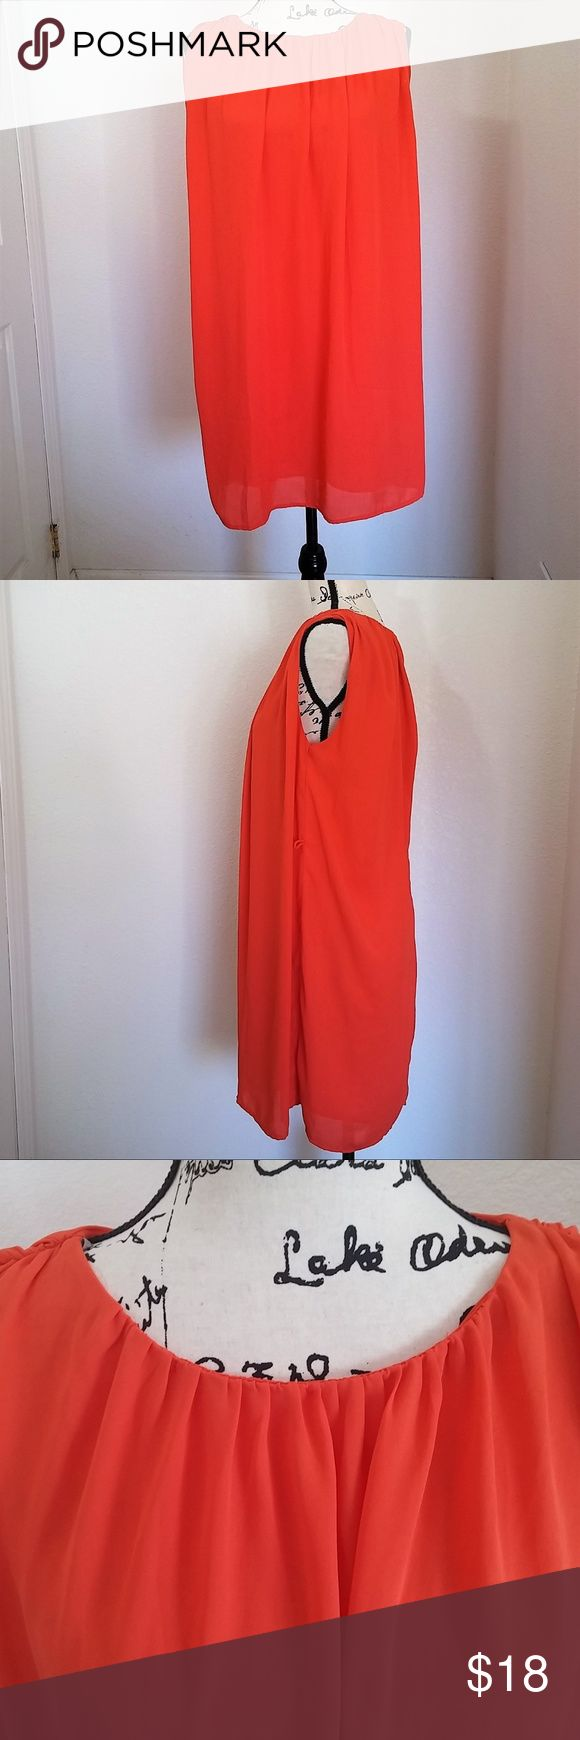 """sz XS Forever 21 orange chiffon sleeveless dress Forever 21 orange chiffon sleeveless dress. Pleated scoop neck. Fully lined. Hand wash.  Note - belt is not included.   Size XS - 30"""" length, 15"""" shoulder to shoulder, 20"""" chest  See photos for details. Smoke free, pet friendly home.   Please message me with any questions. Ask if additional size detail is needed.   15% discount for 3+ item bundles. Check out my closet. Happy Poshing!  665/CR Forever 21 Dresses"""